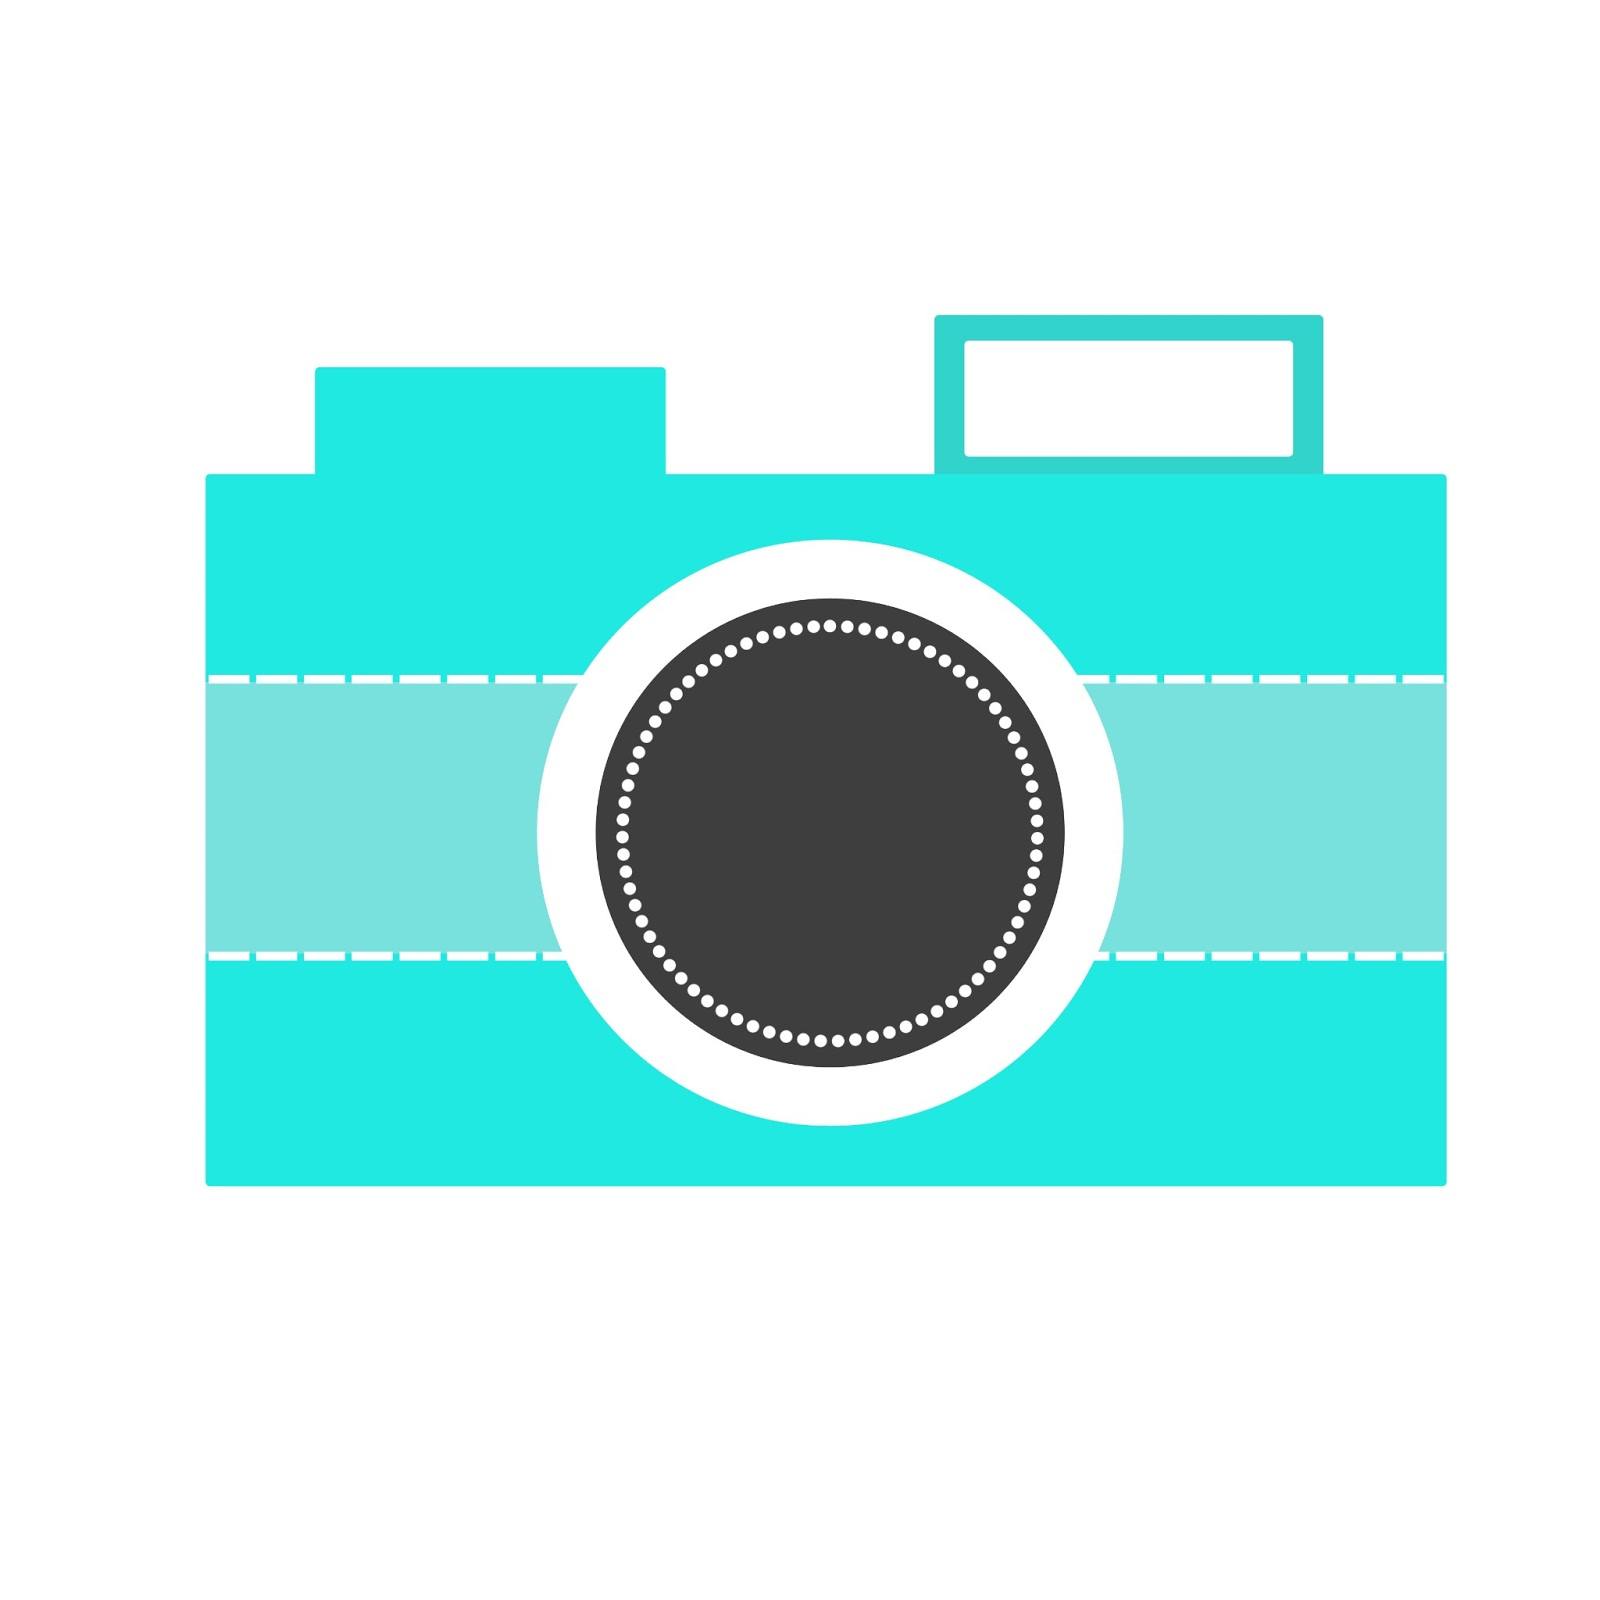 1600x1600 Clipart Of Camera